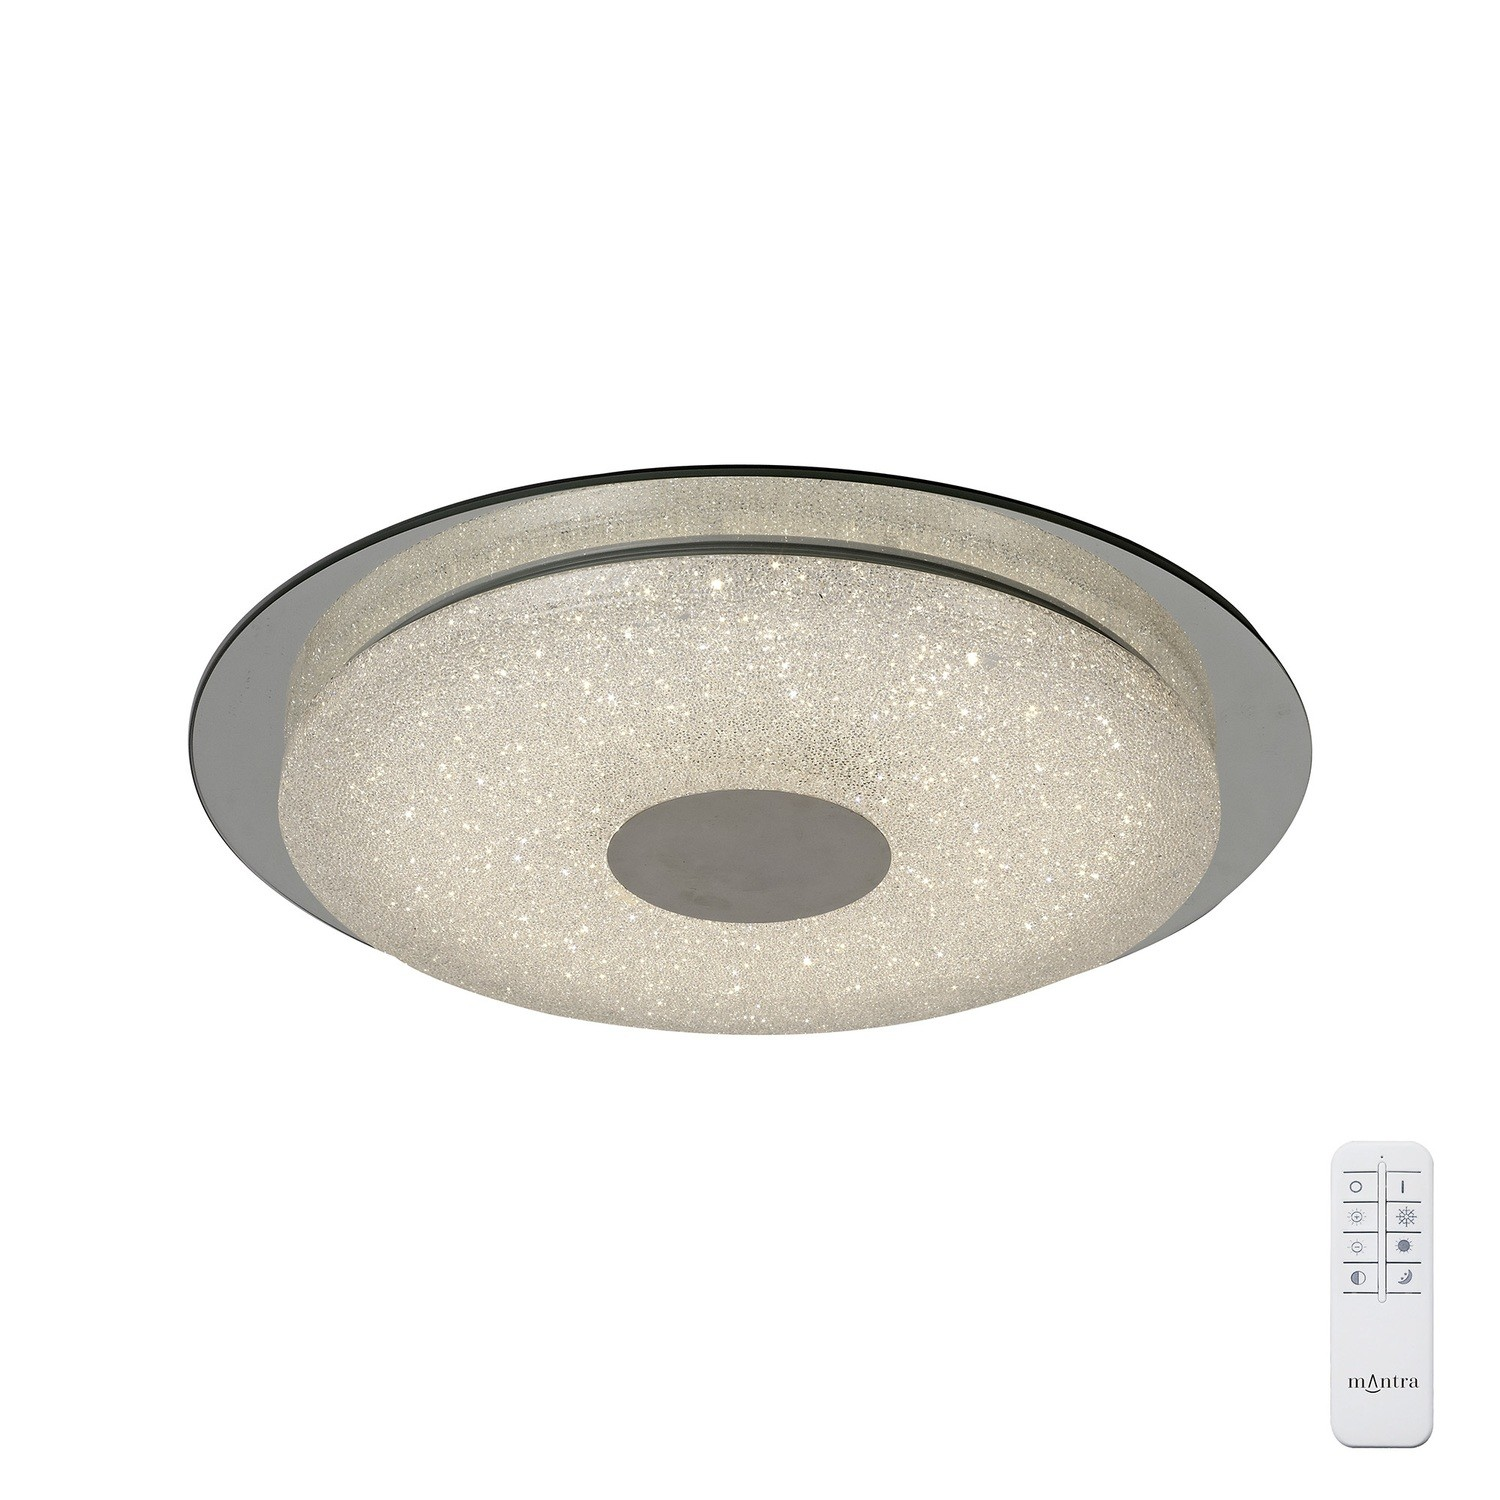 Virgin Ceiling 45cm Round 18W LED 2700-6500K Tuneable, 1680lm, Remote Control White/ Diamond